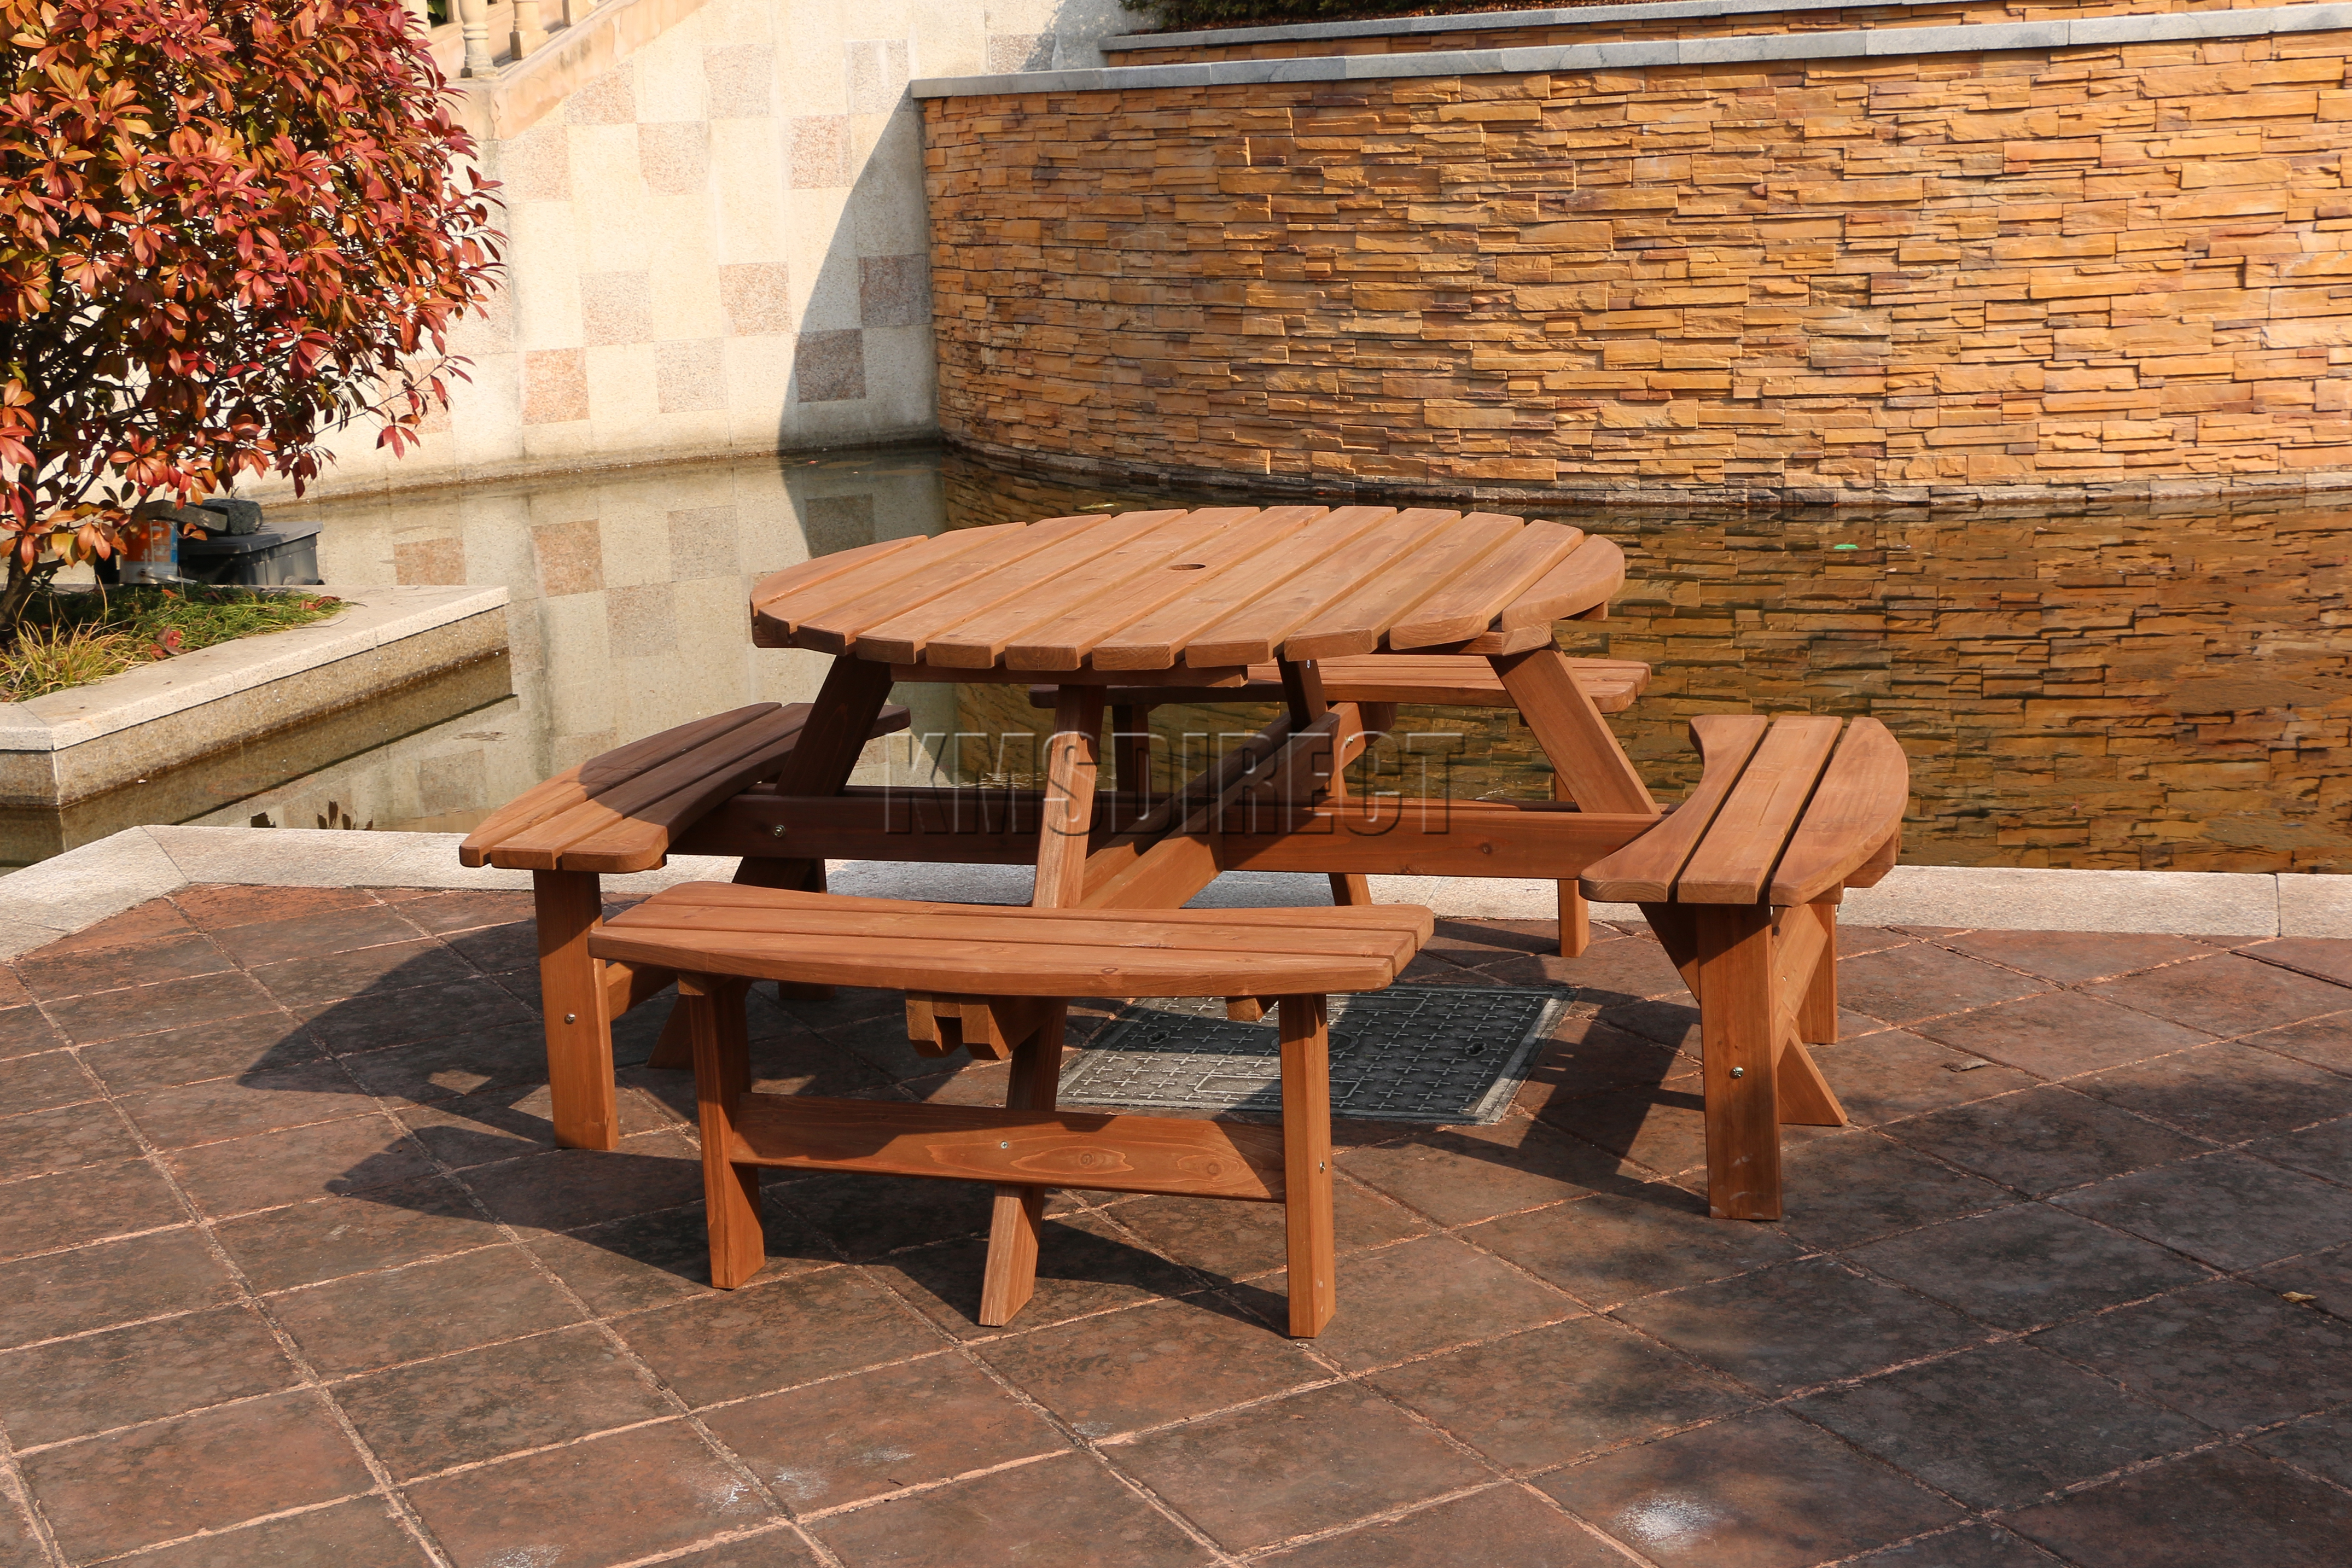 New 8 Seater Wooden Pub Bench Round Picnic Beer Table Furniture. 8 Seater Round Picnic Table   Starrkingschool